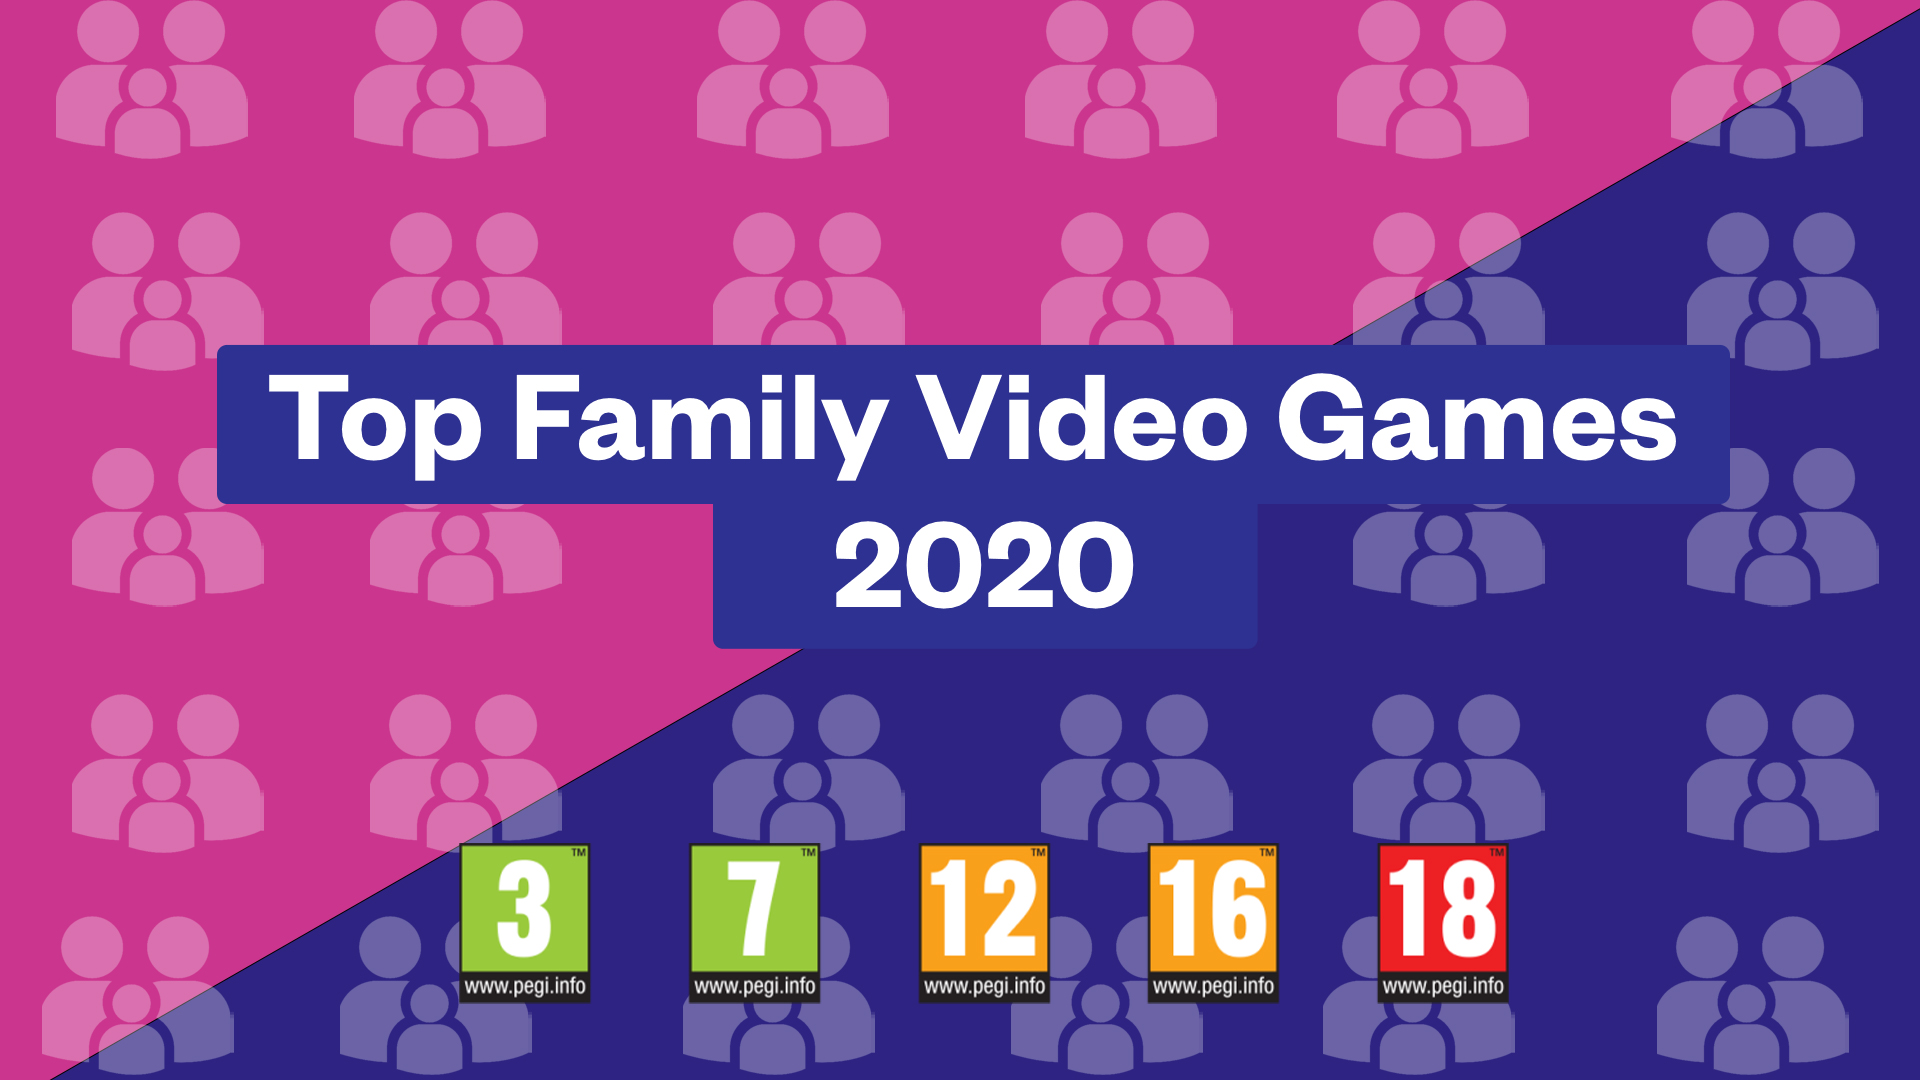 Featured Image for Top Family Video Games 2020